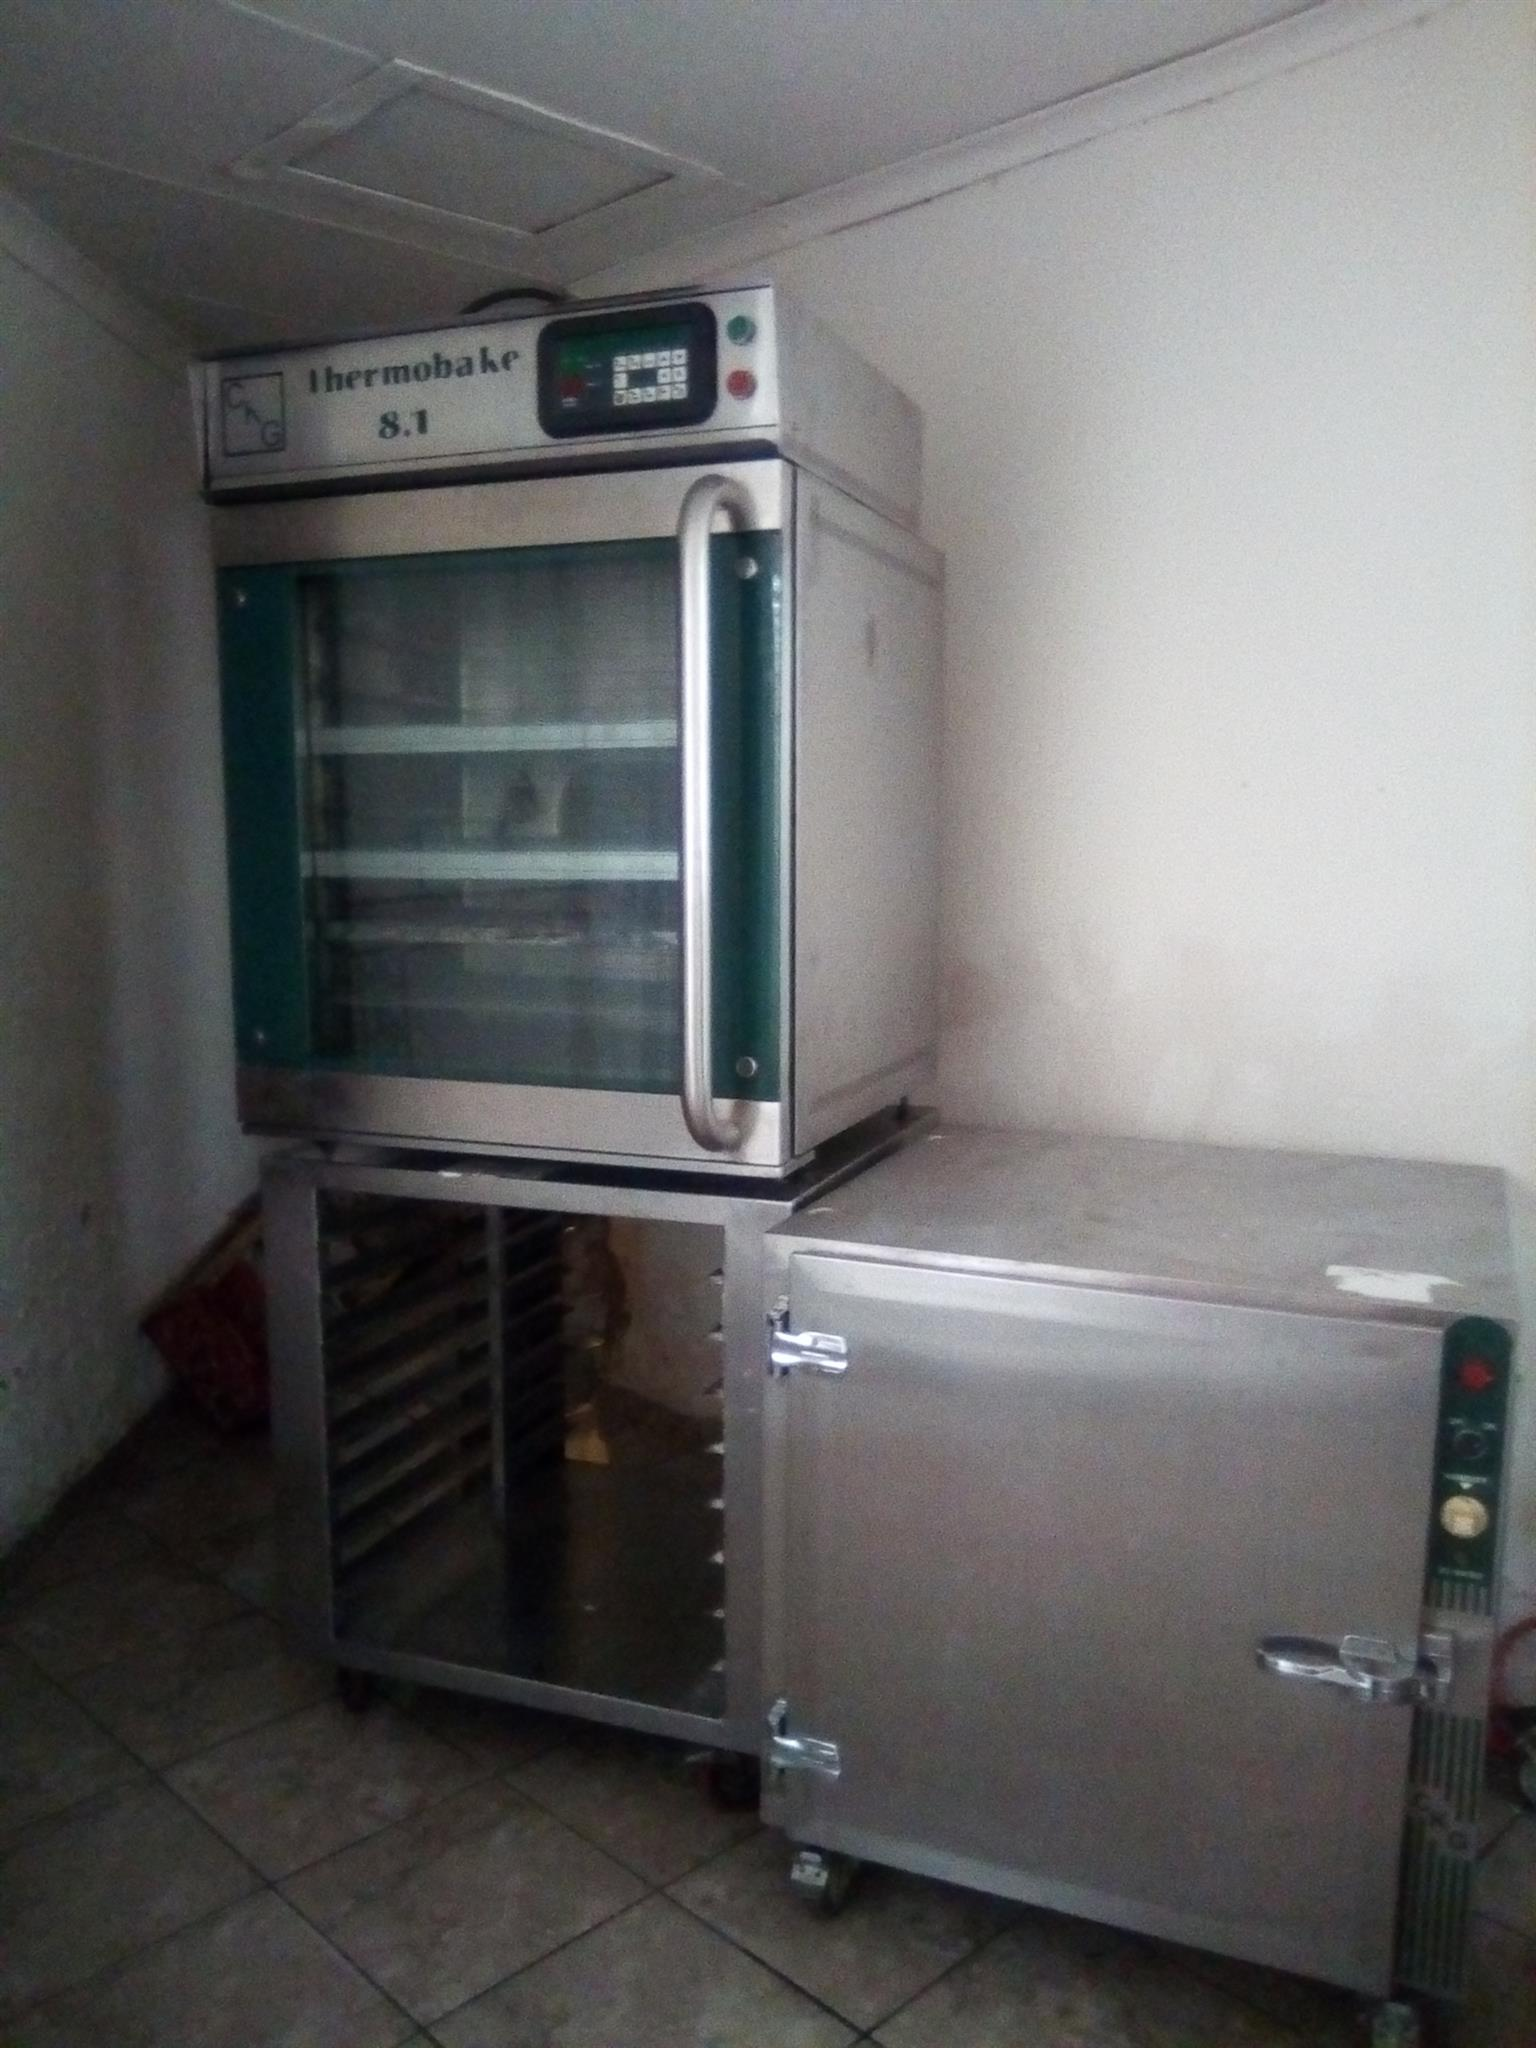 Thermobake 8.1 convection oven programmable, Proover and stainless steel tray